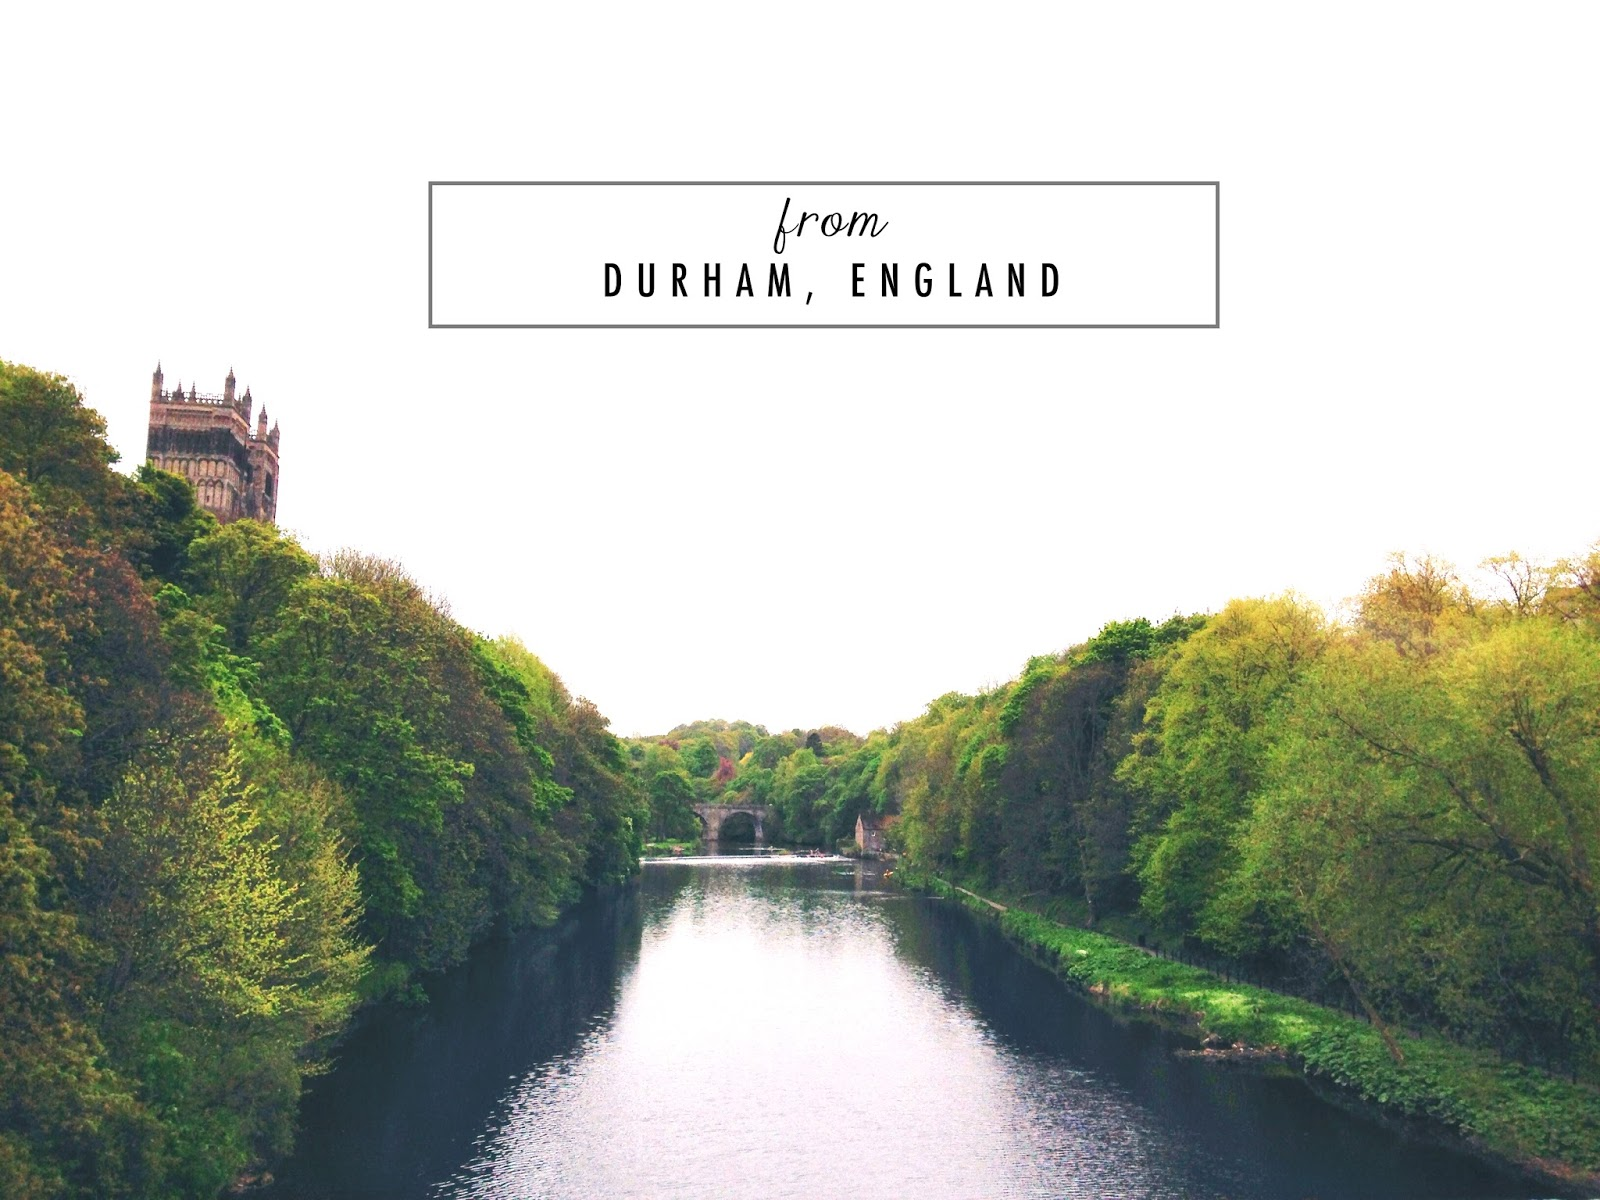 a photo of durham river